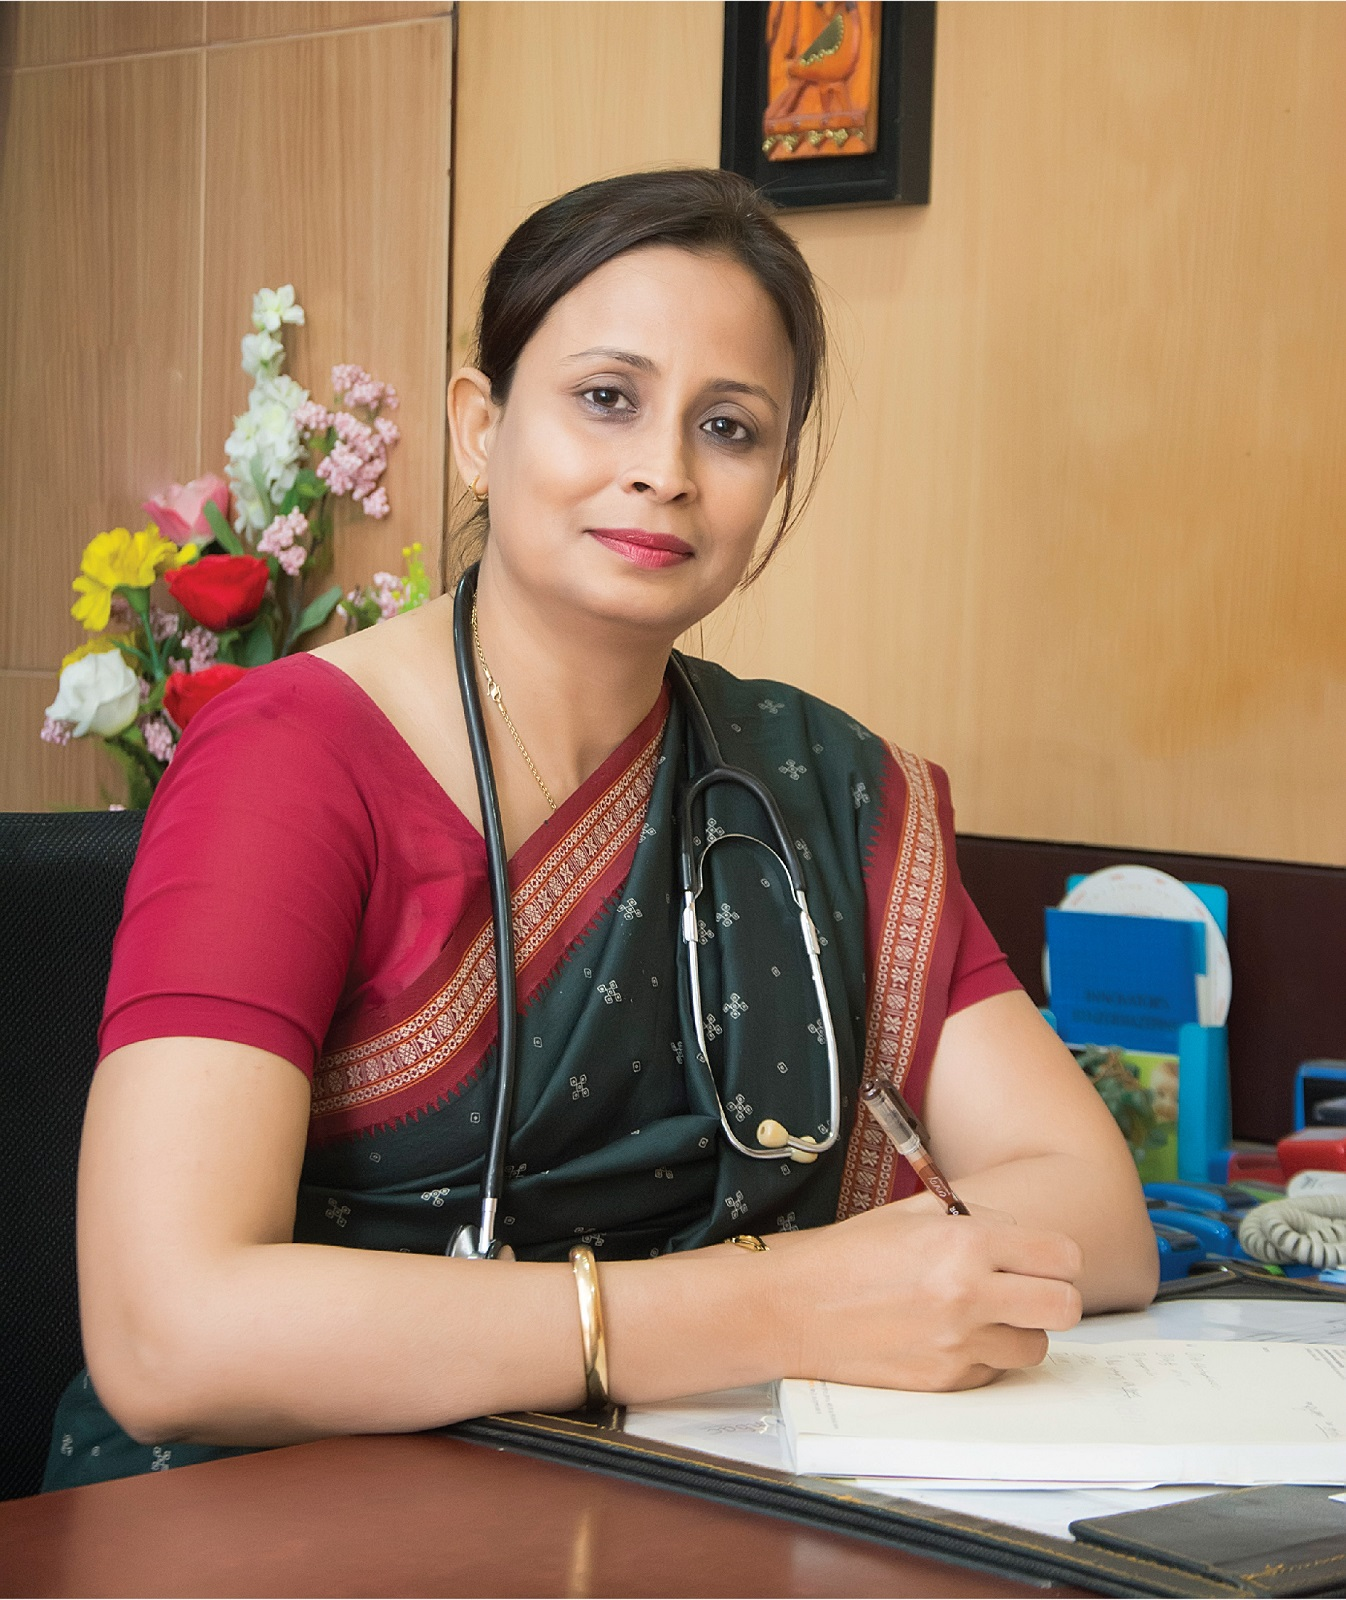 Obstretician and Gynecologist Dr. Farzana Deeba